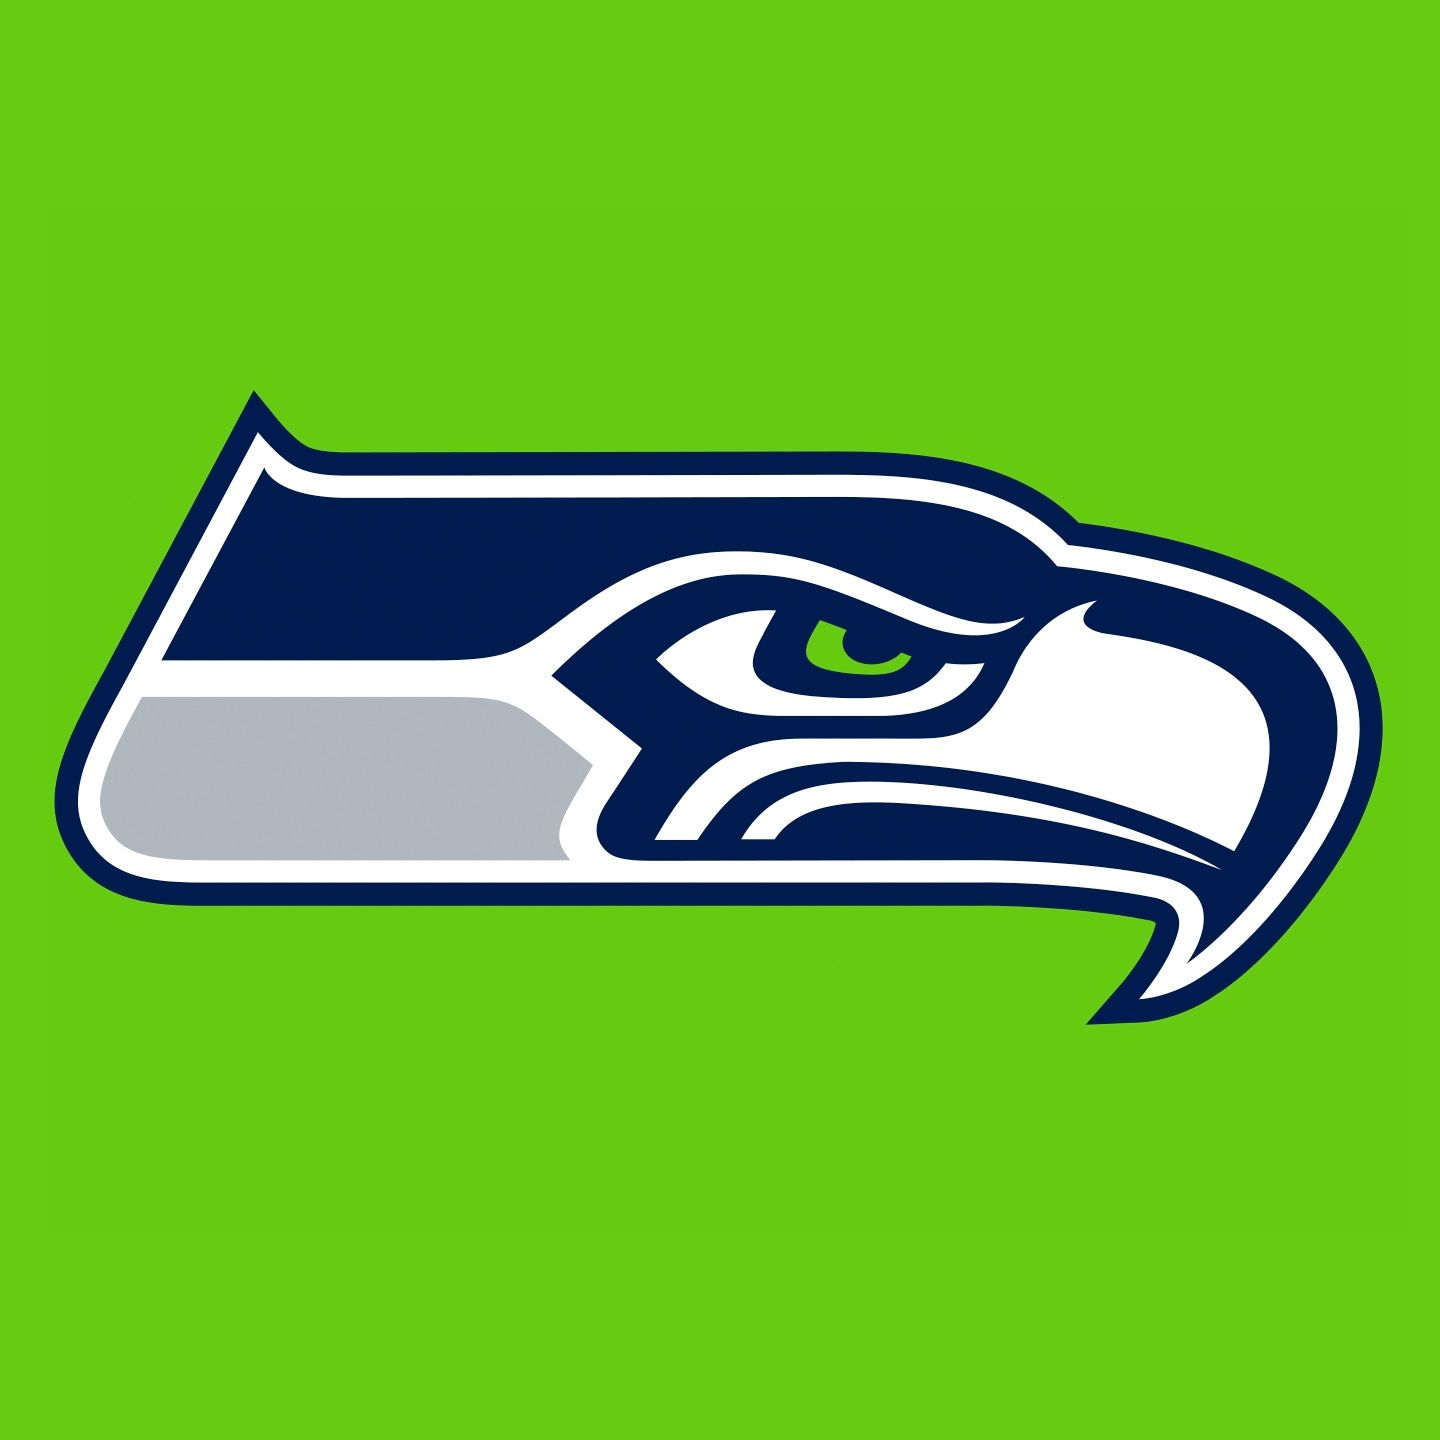 Seattle Seahawks Logo www.bet at home.com angielski